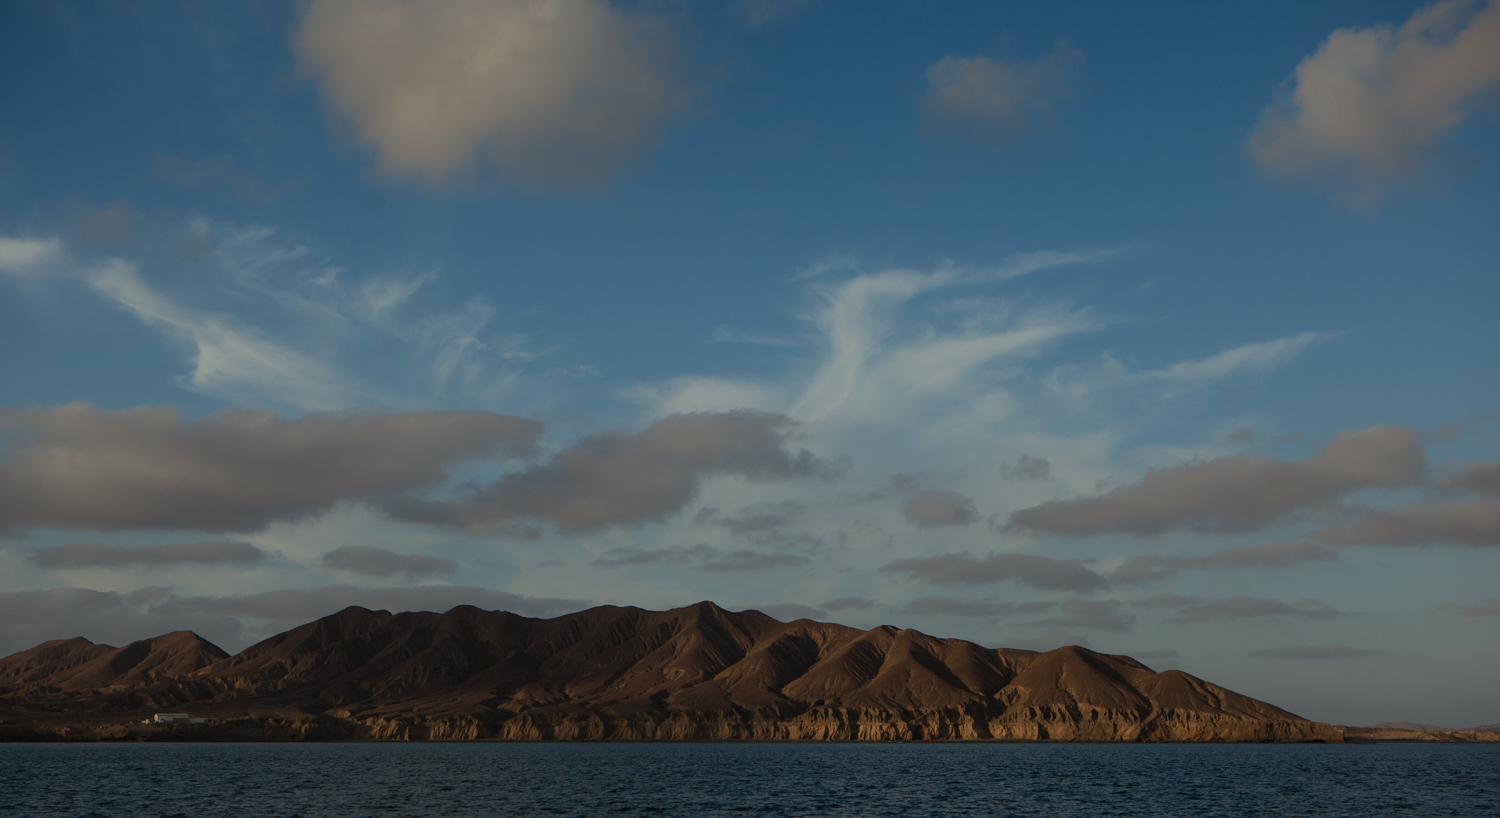 Bahia Tortuga. Much of the Baja coastline was like this - austere, remote, beautiful.